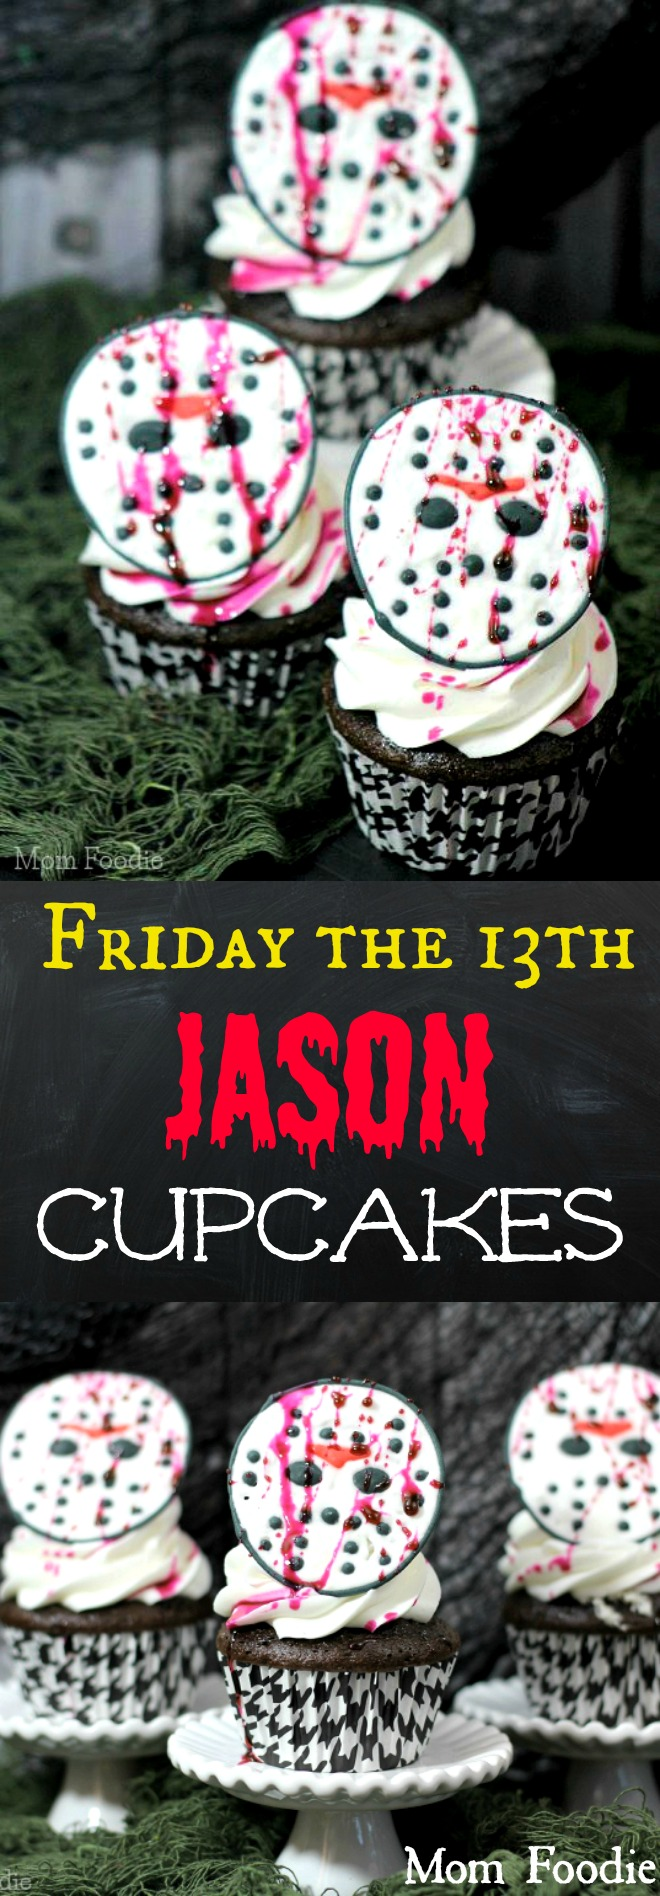 Friday the 13th Jason Cupcakes - Homemade Halloween Cupcakes great for Horror theme parties